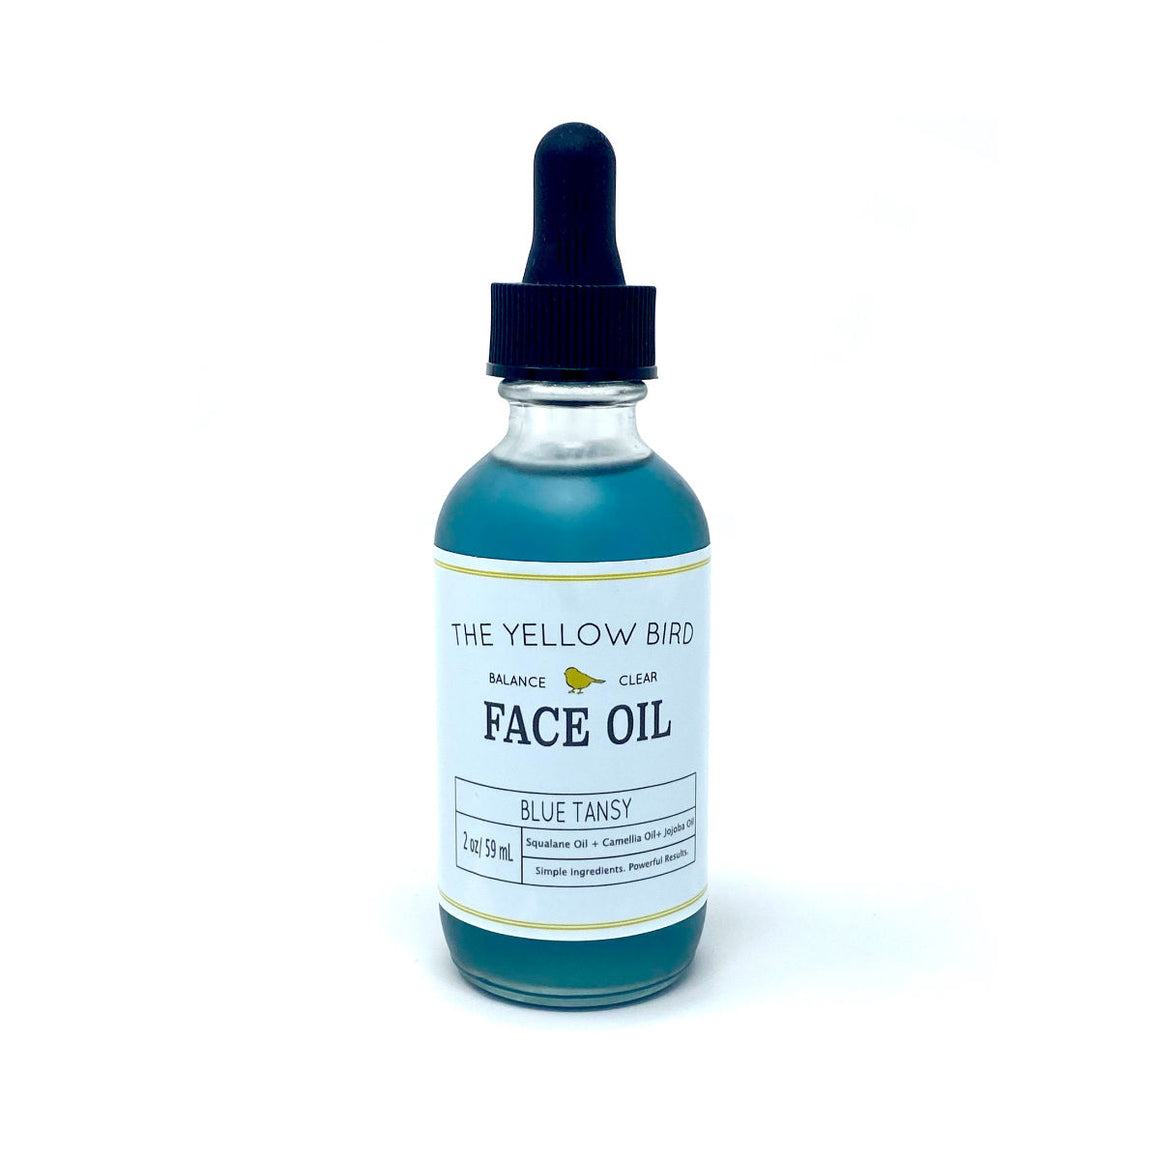 Blue Tansy Face Oil